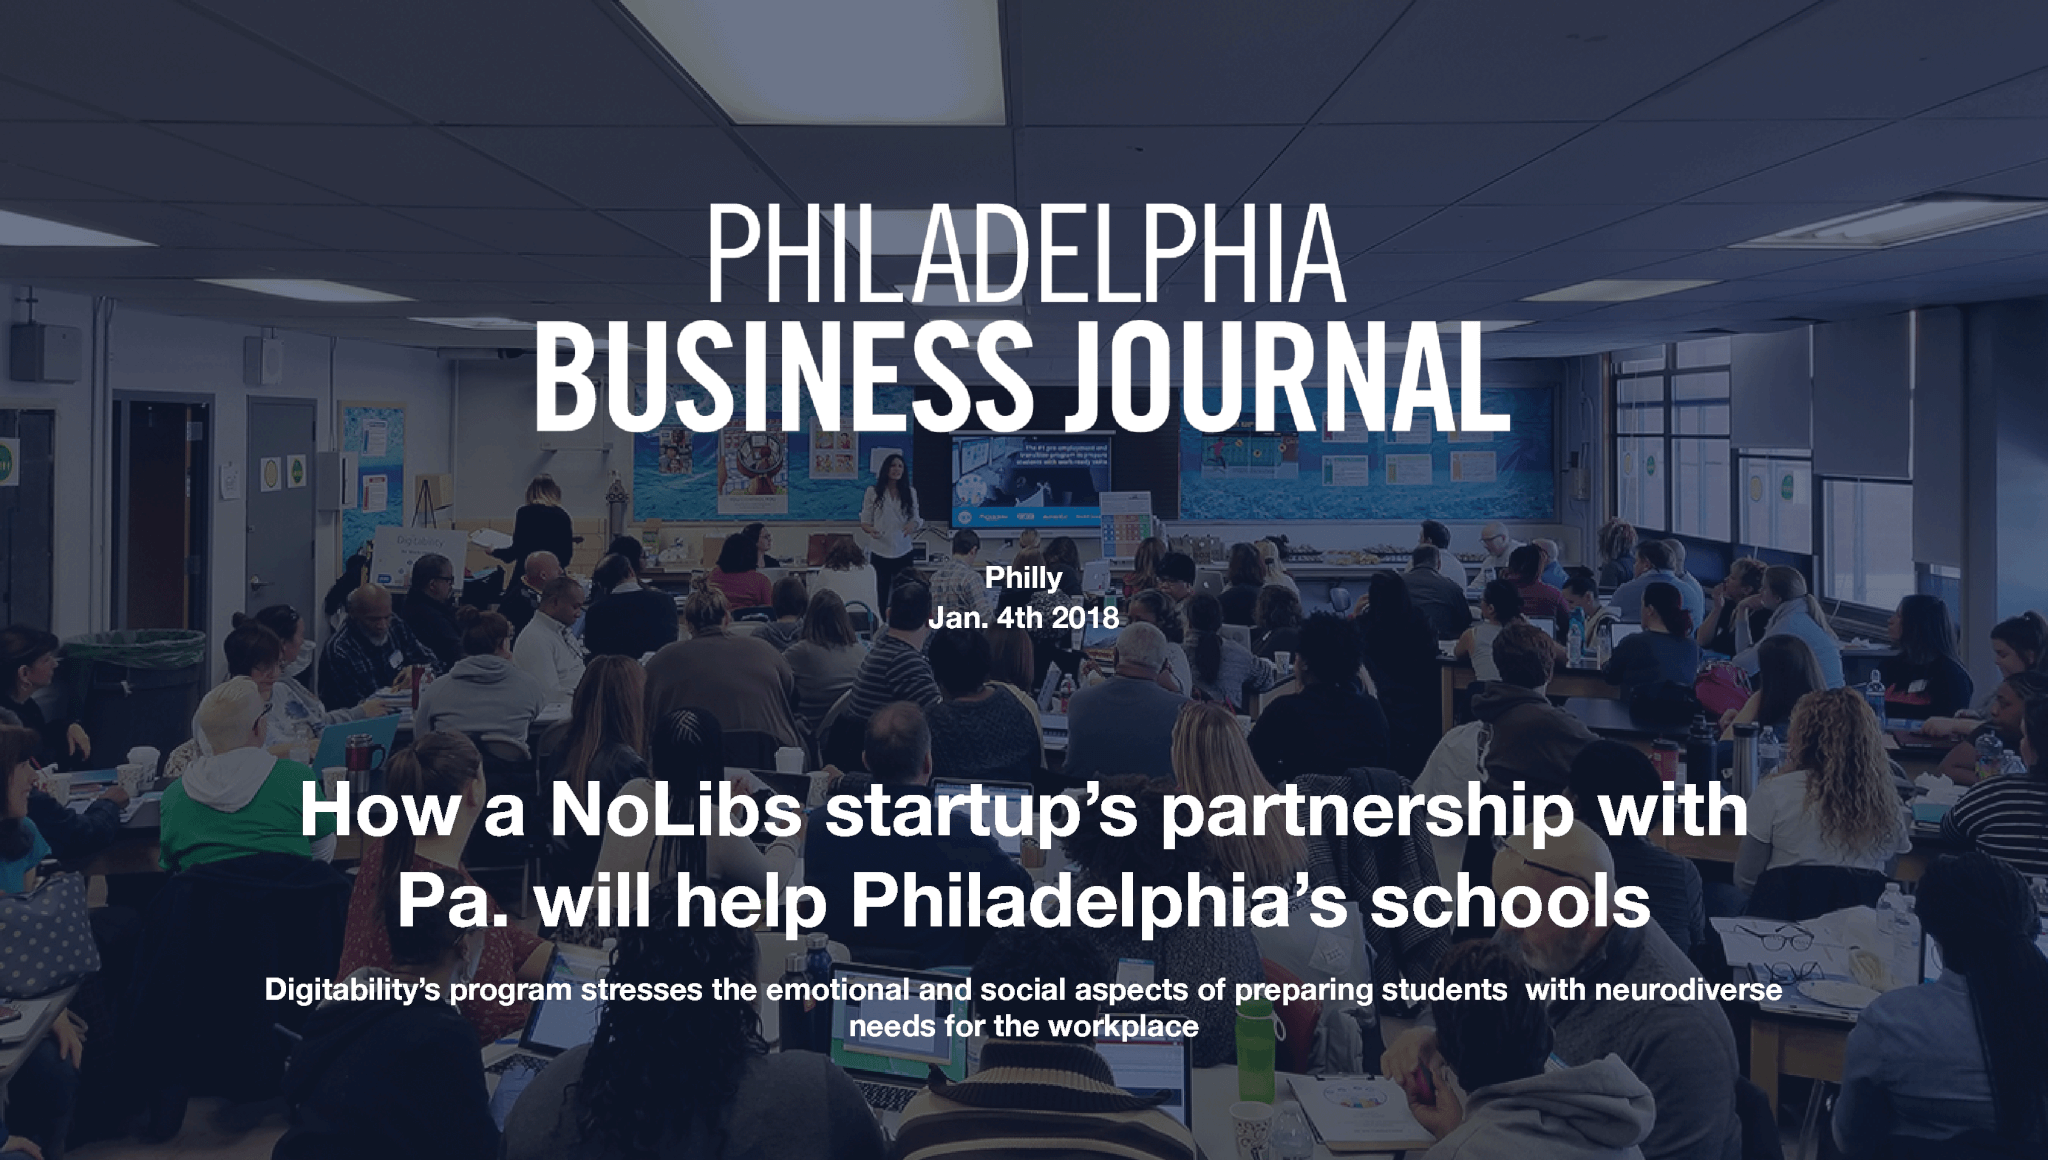 philadelphia-business-journal-digitability-pa-ovr